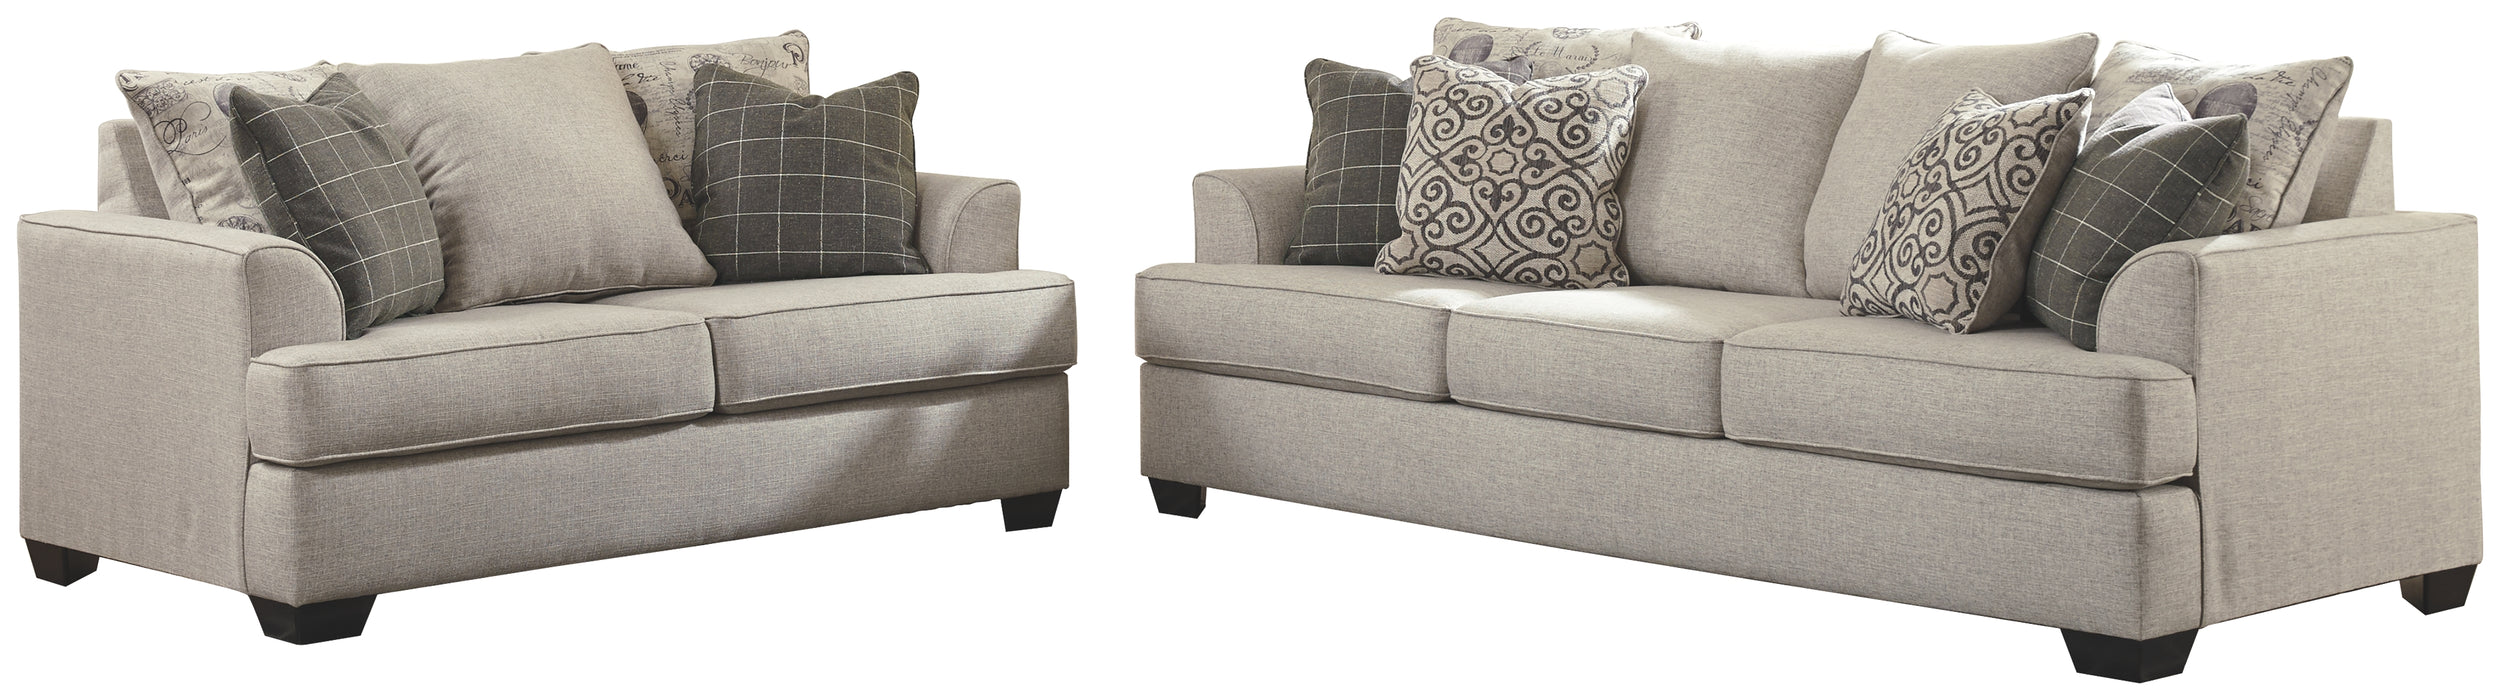 Velletri Signature Design 2-Piece Living Room Set